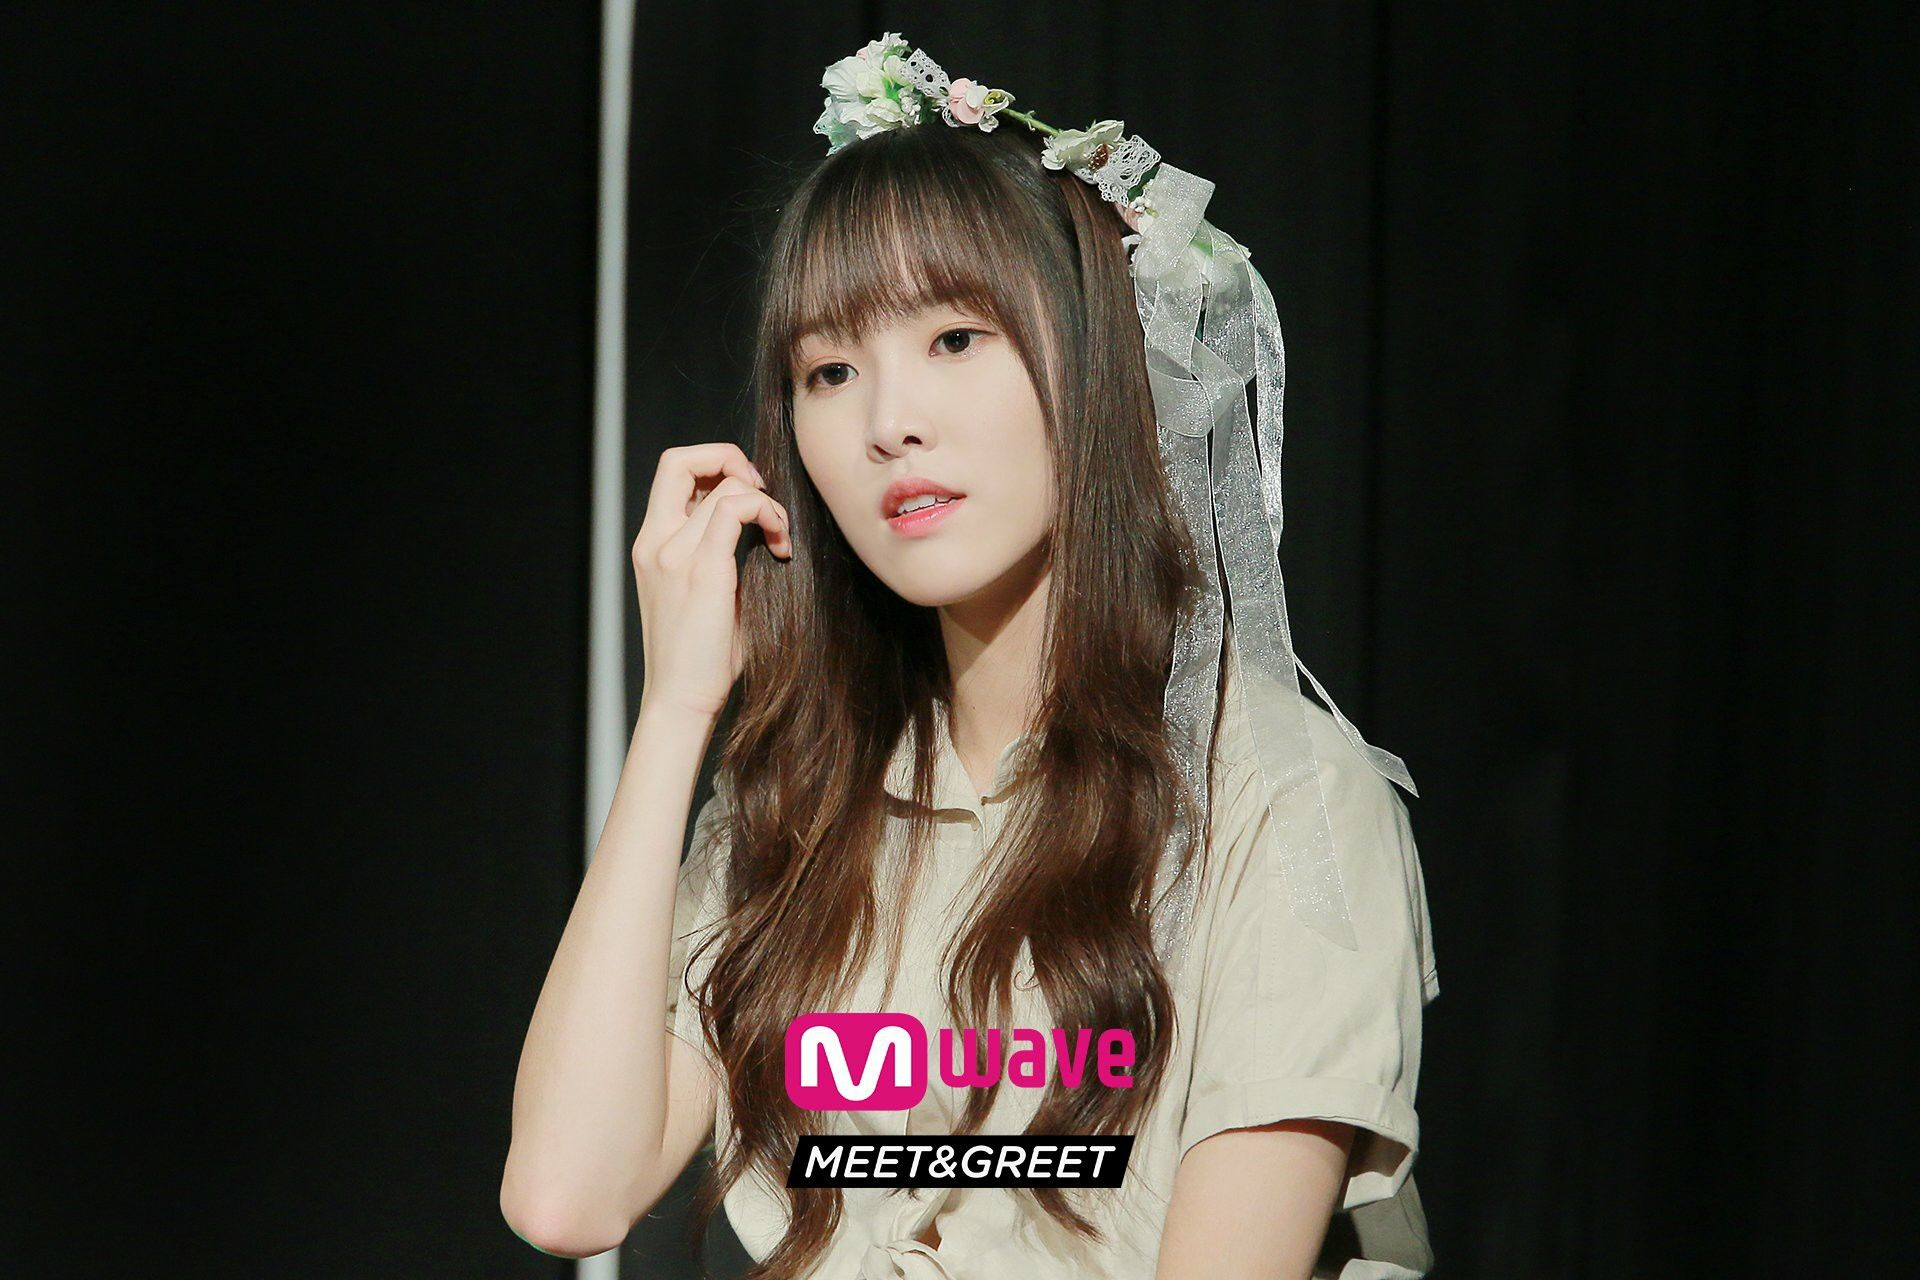 Gfriend at mwave mnet meet and greet cr twitter yuju pinterest gfriend at mwave mnet meet and greet cr twitter kristyandbryce Image collections